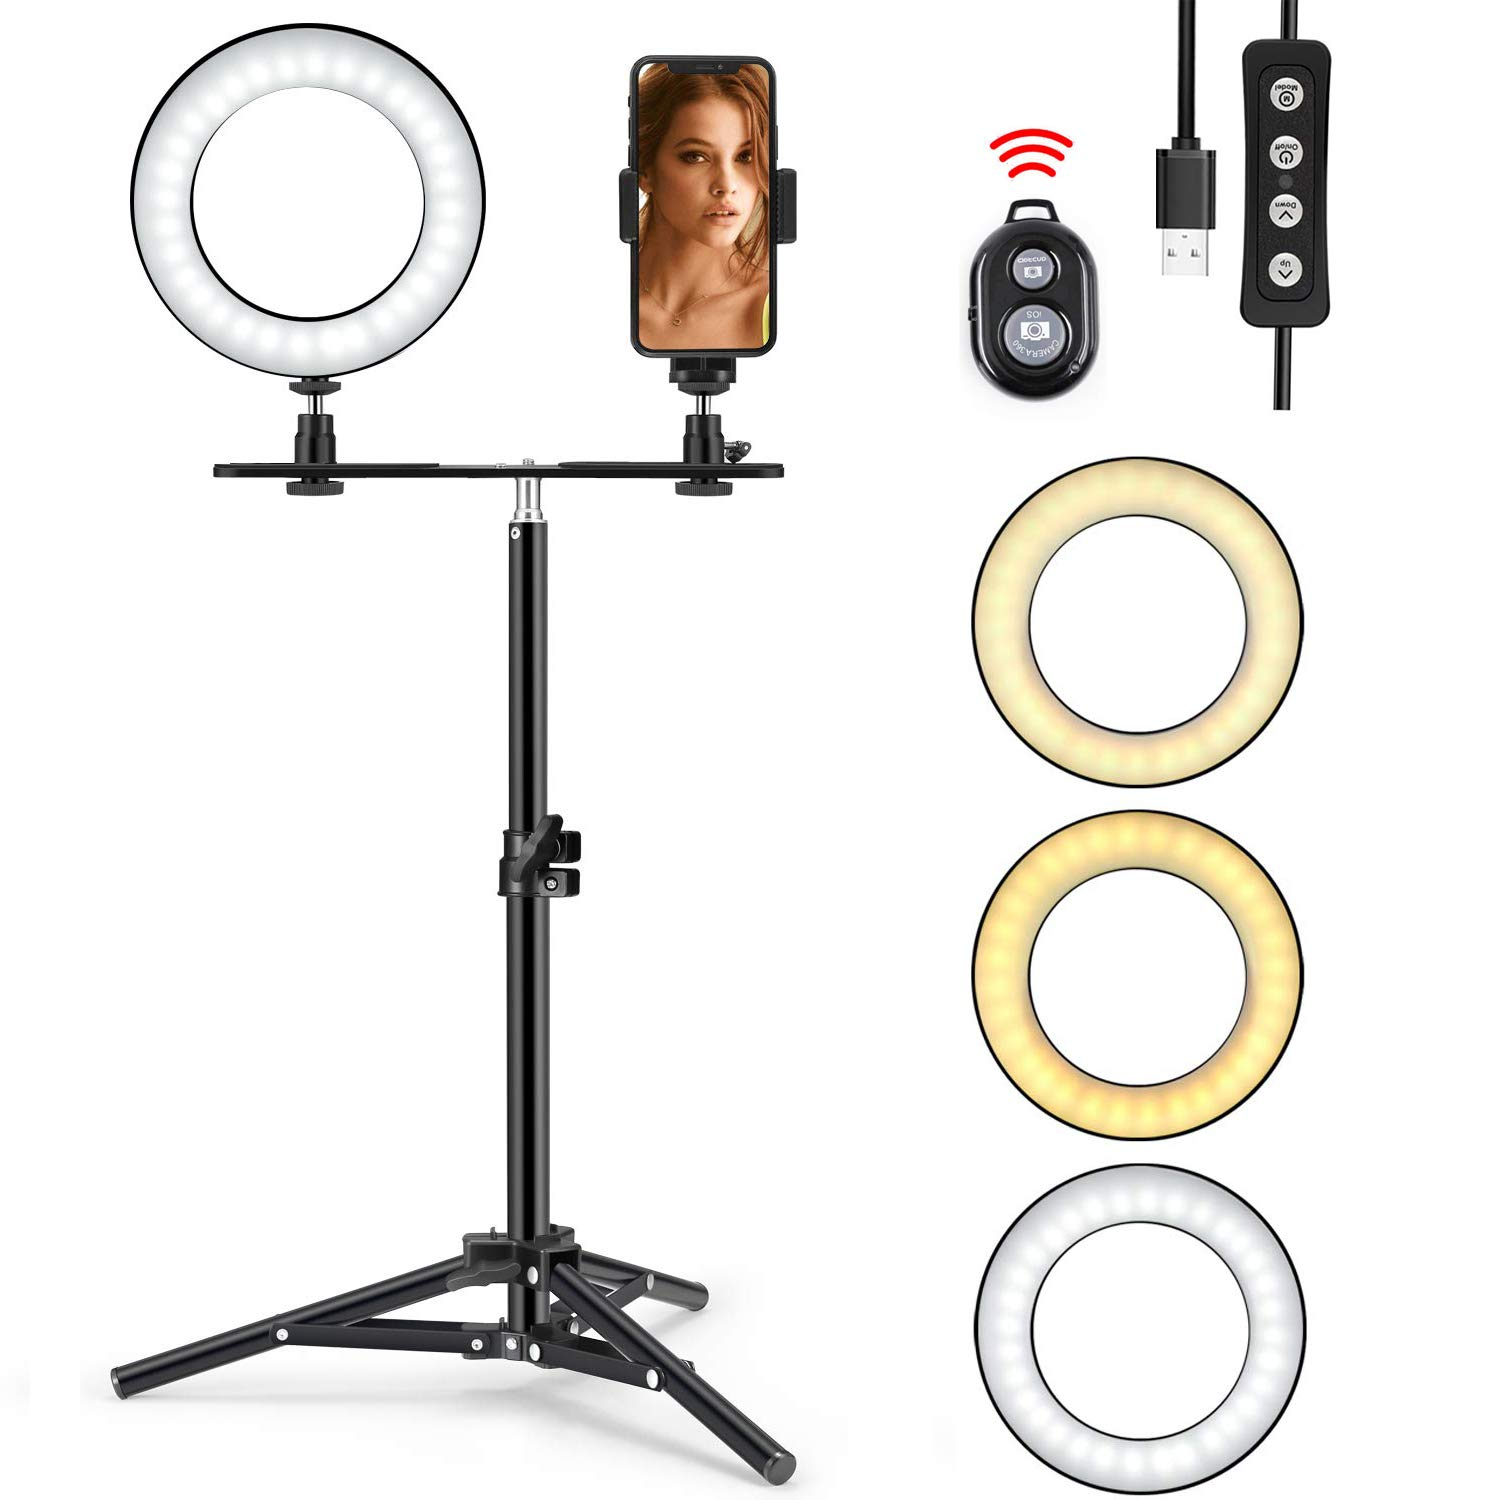 Ring Light with Stand, Foxin Selfie Ring Light with Tripod Stand & Cell Phone Holder Stand for Live Stream/Makeup, Mini LED Camera Light Desktop LED Lamp with 3 Light Modes & 11 Brightness Level by FOXIN (Image #1)